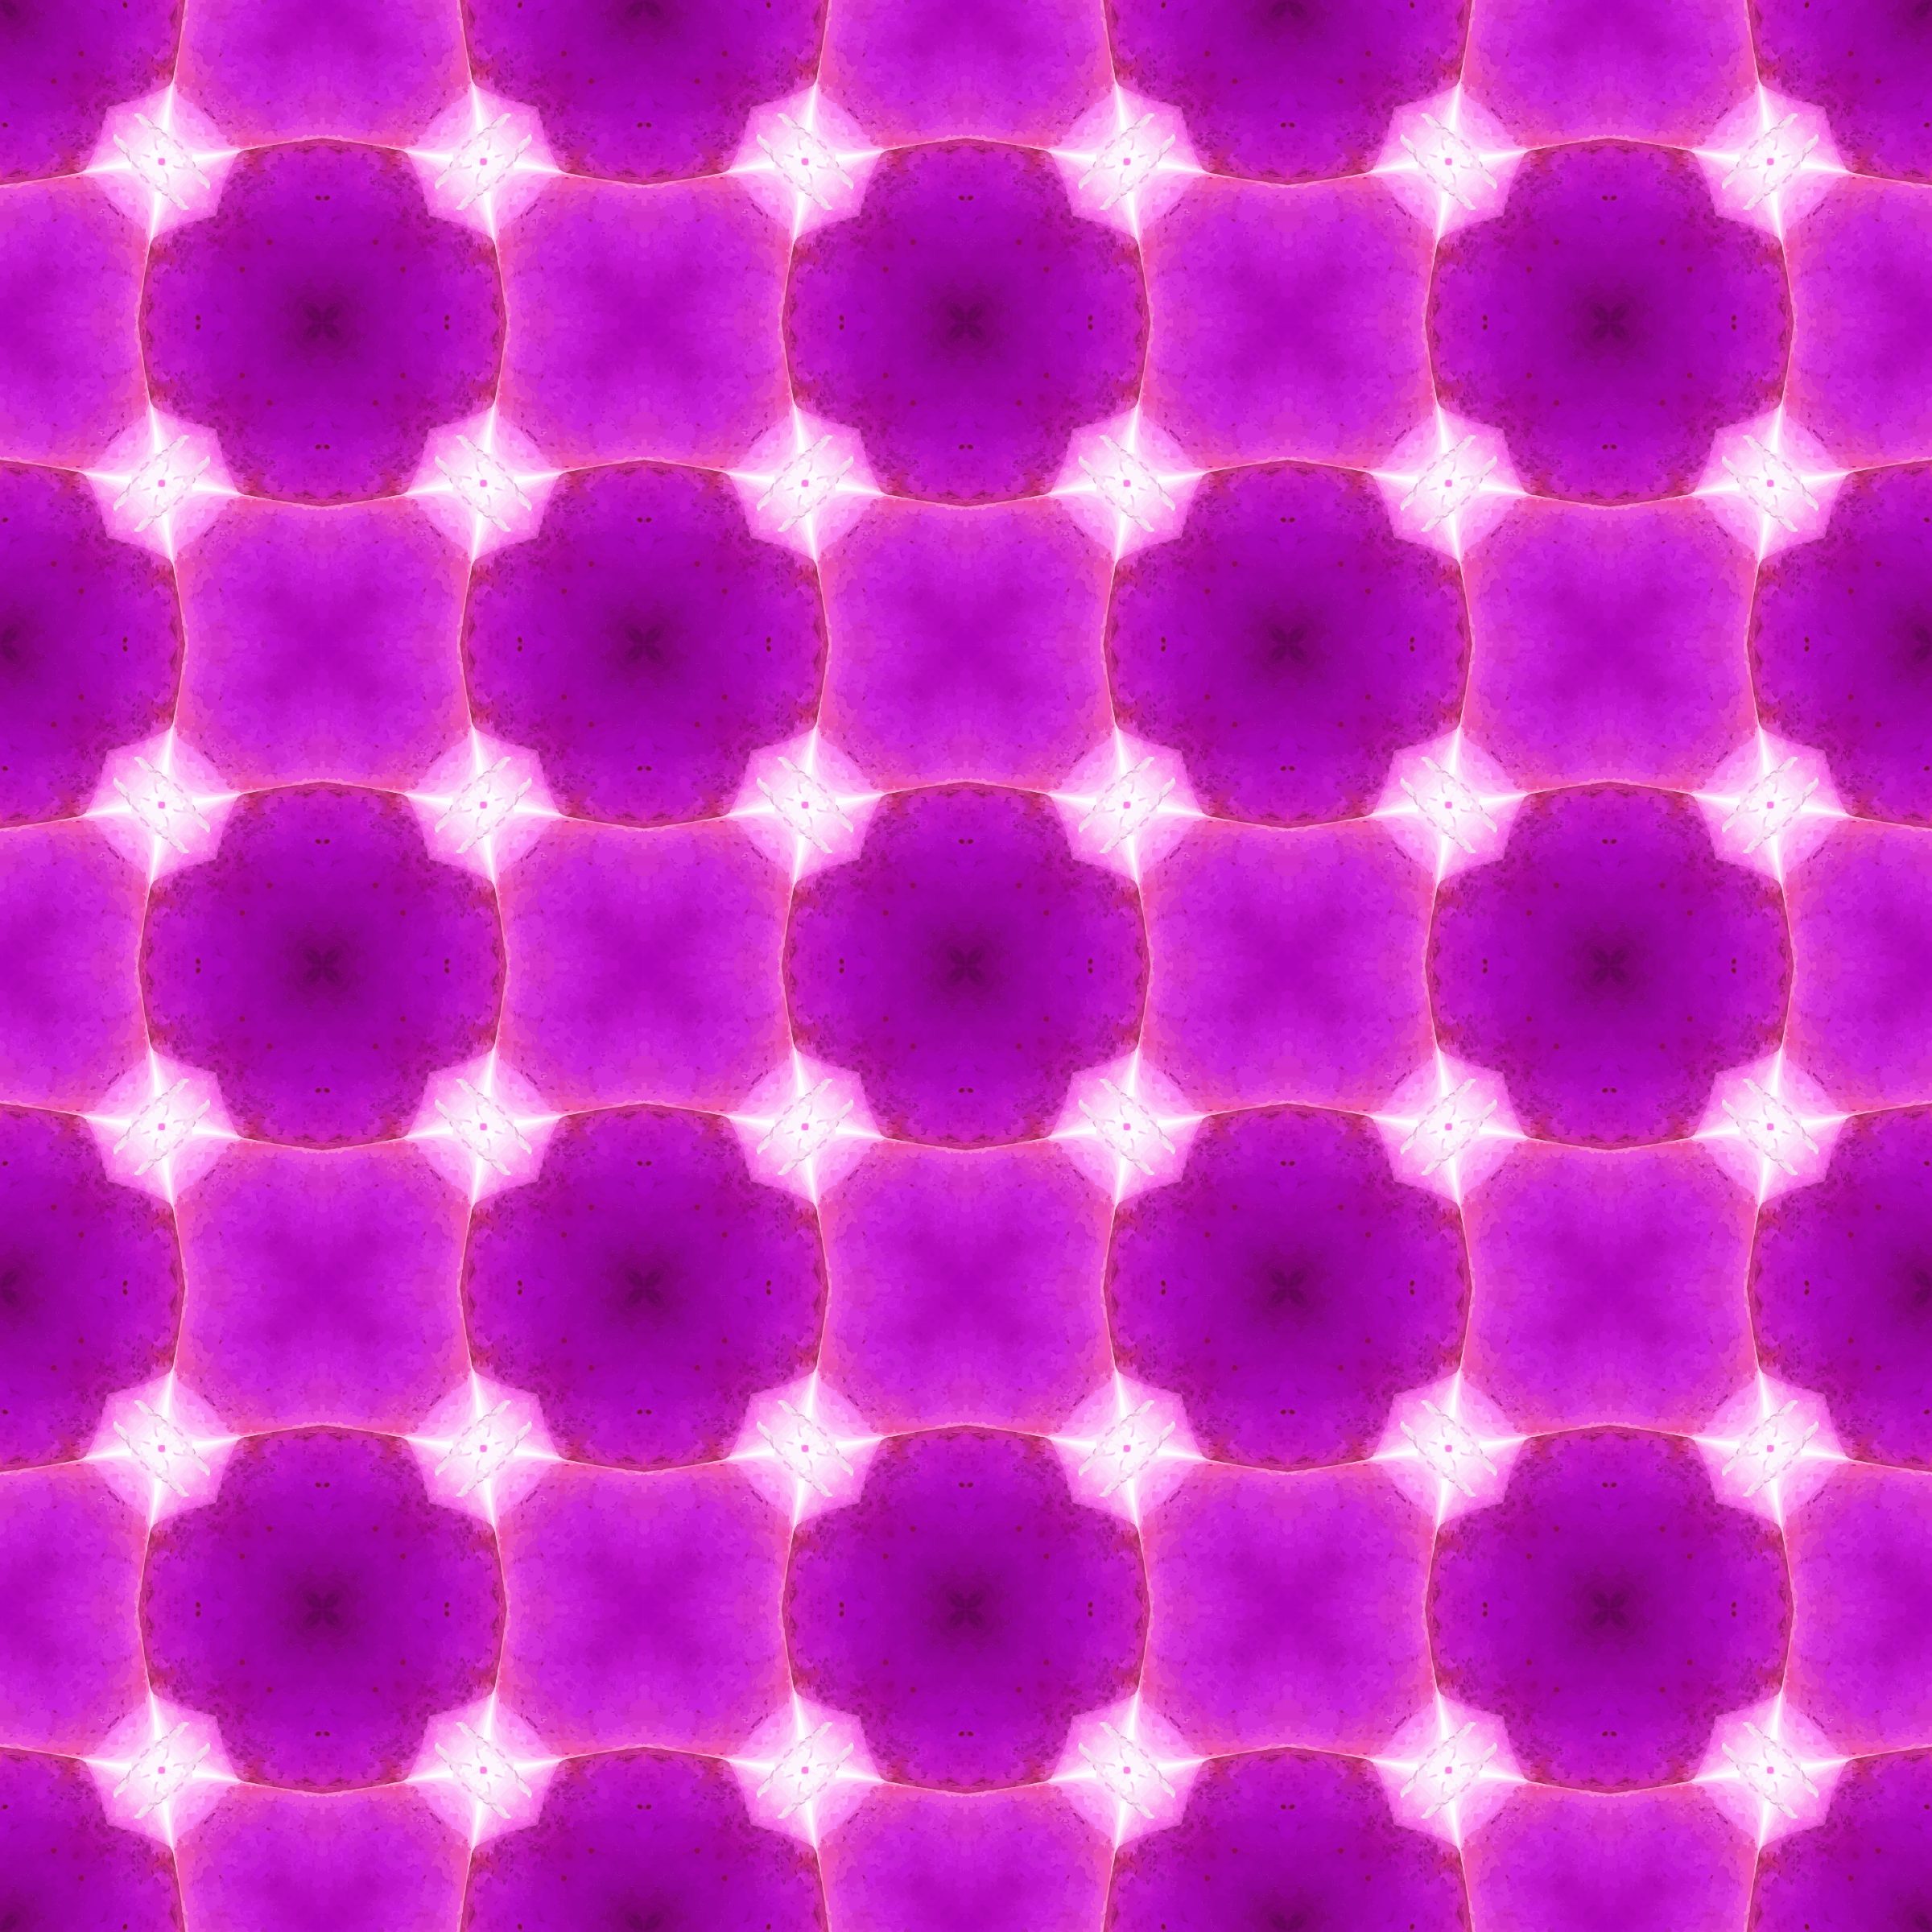 Background pattern 165 (colour 6) by Firkin